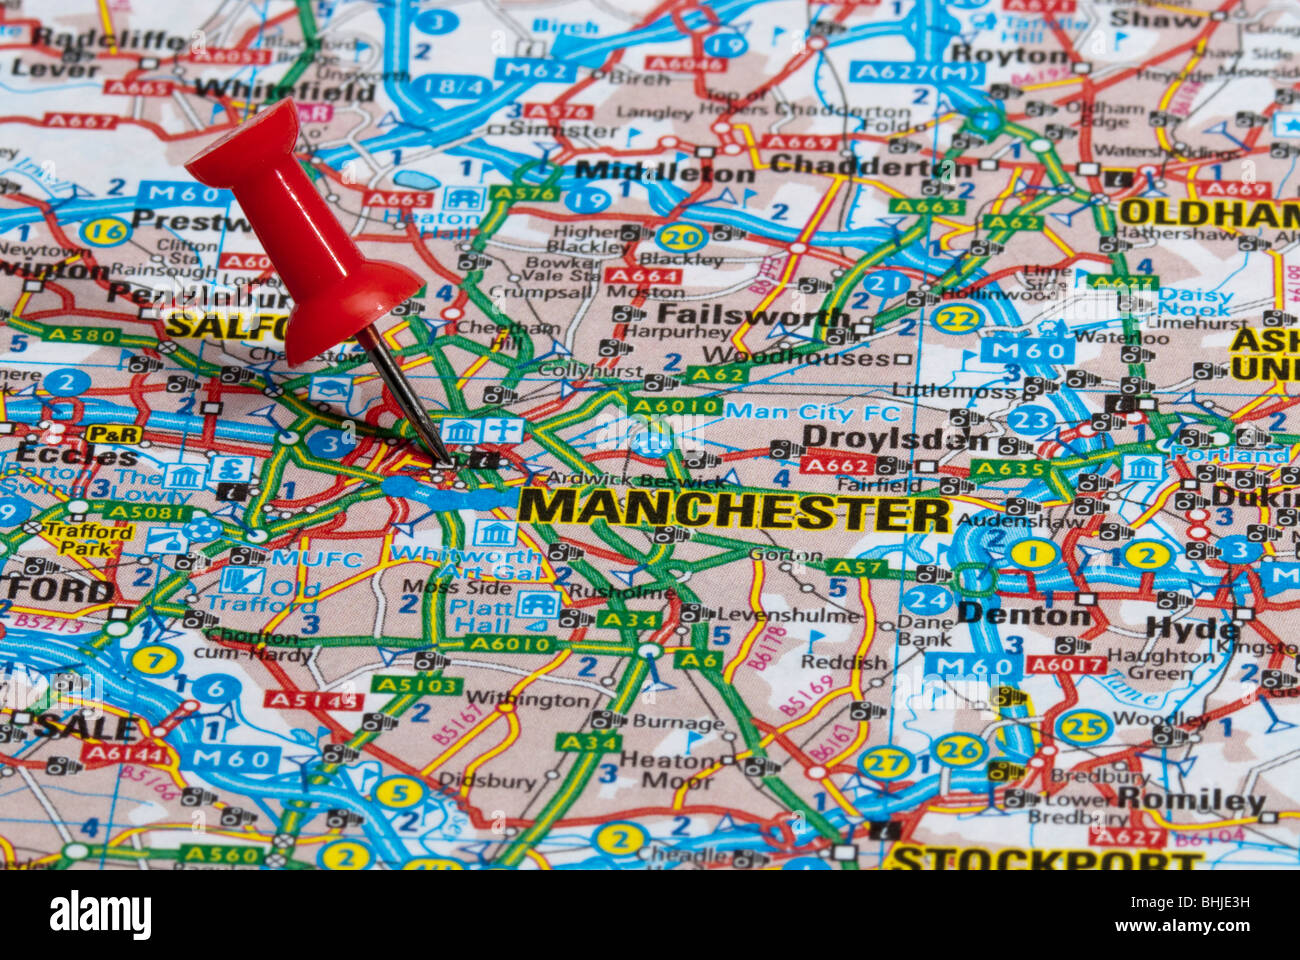 map great britain manchester stock photos map great britain